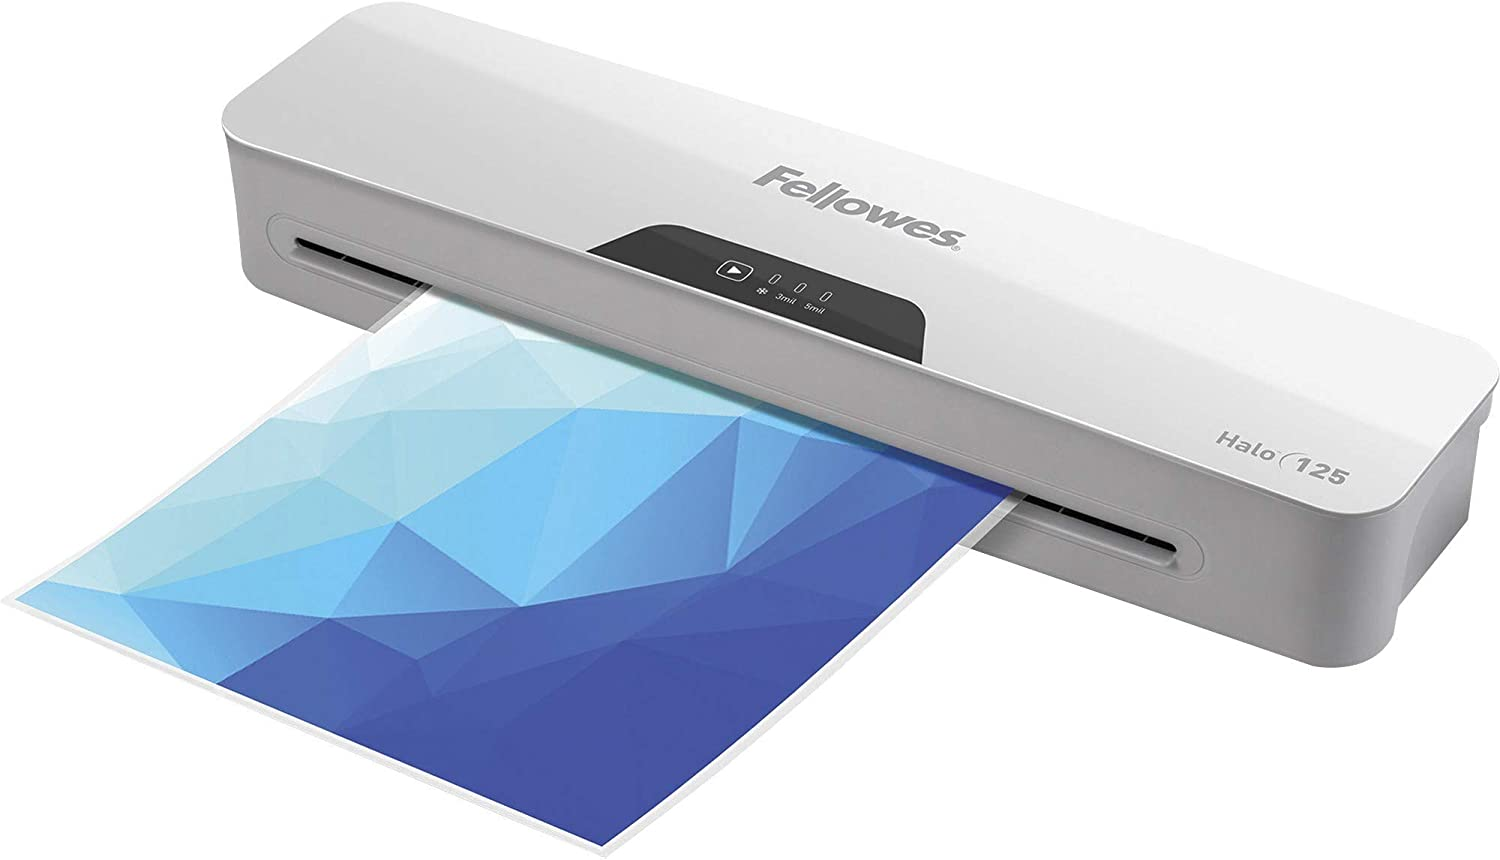 """Fellowes Halo 125 Laminator with Pouch Starter Kit,""""4.3"""""""" x 17.1"""""""" x 2.9"""""""""""""""